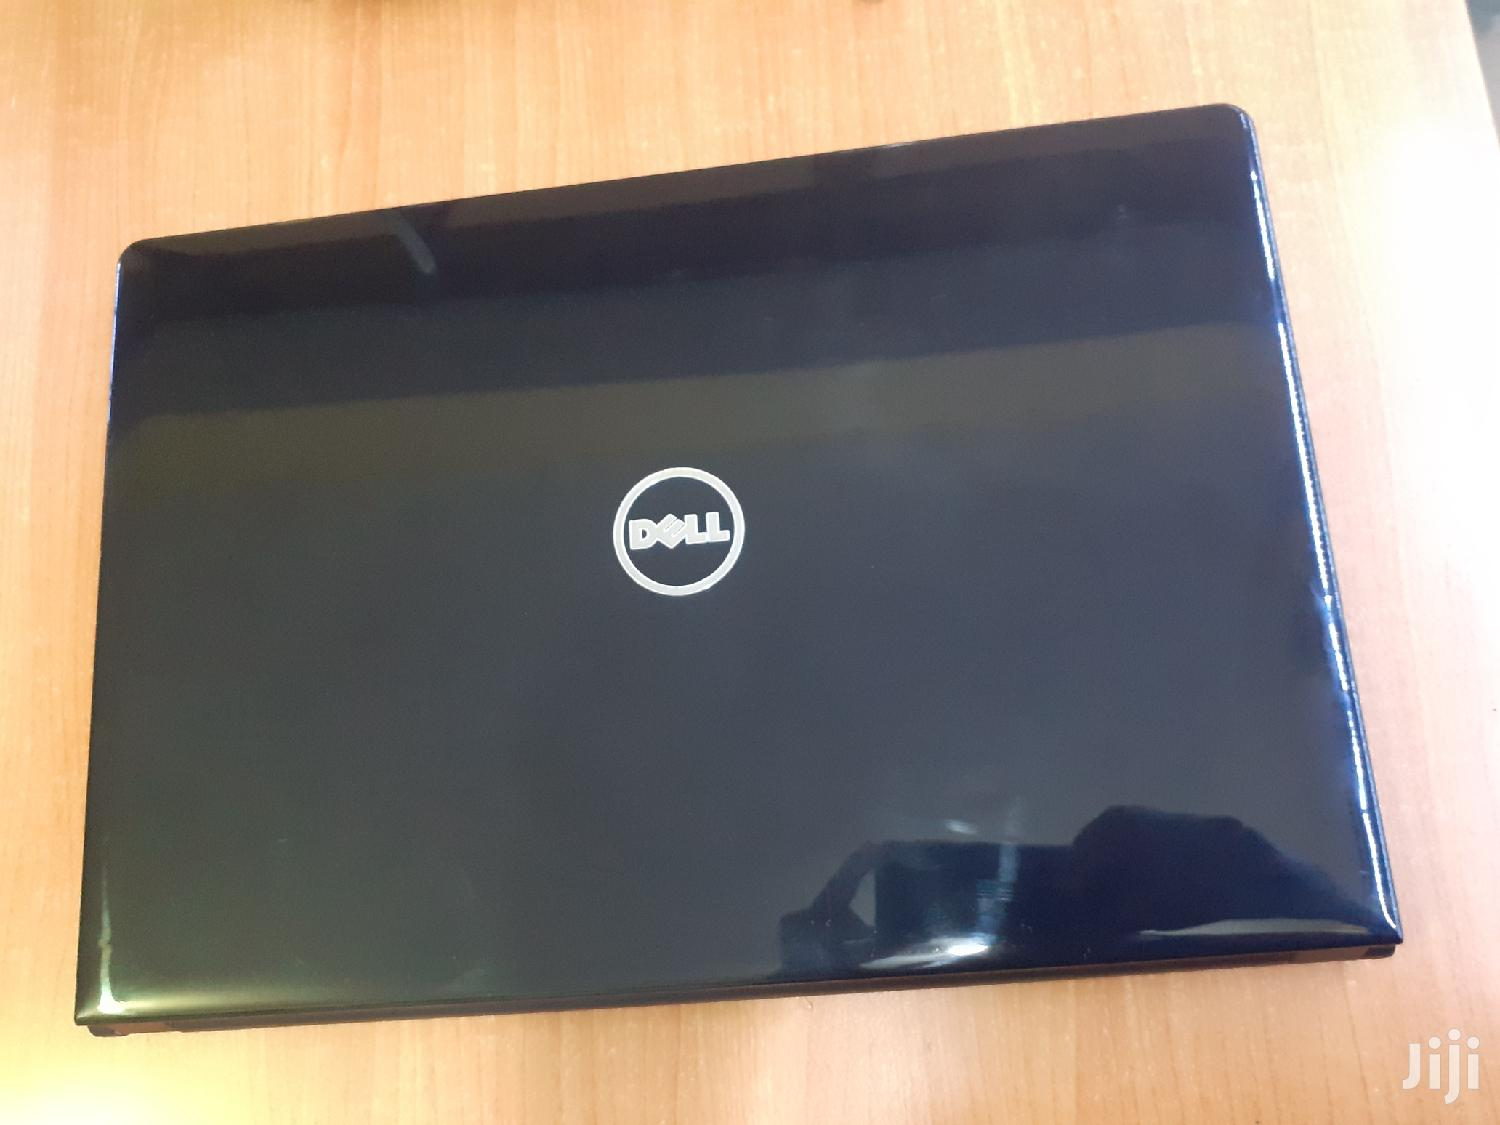 Archive: Laptop Dell Inspiron 5559 4GB Intel Core i3 HDD 500GB